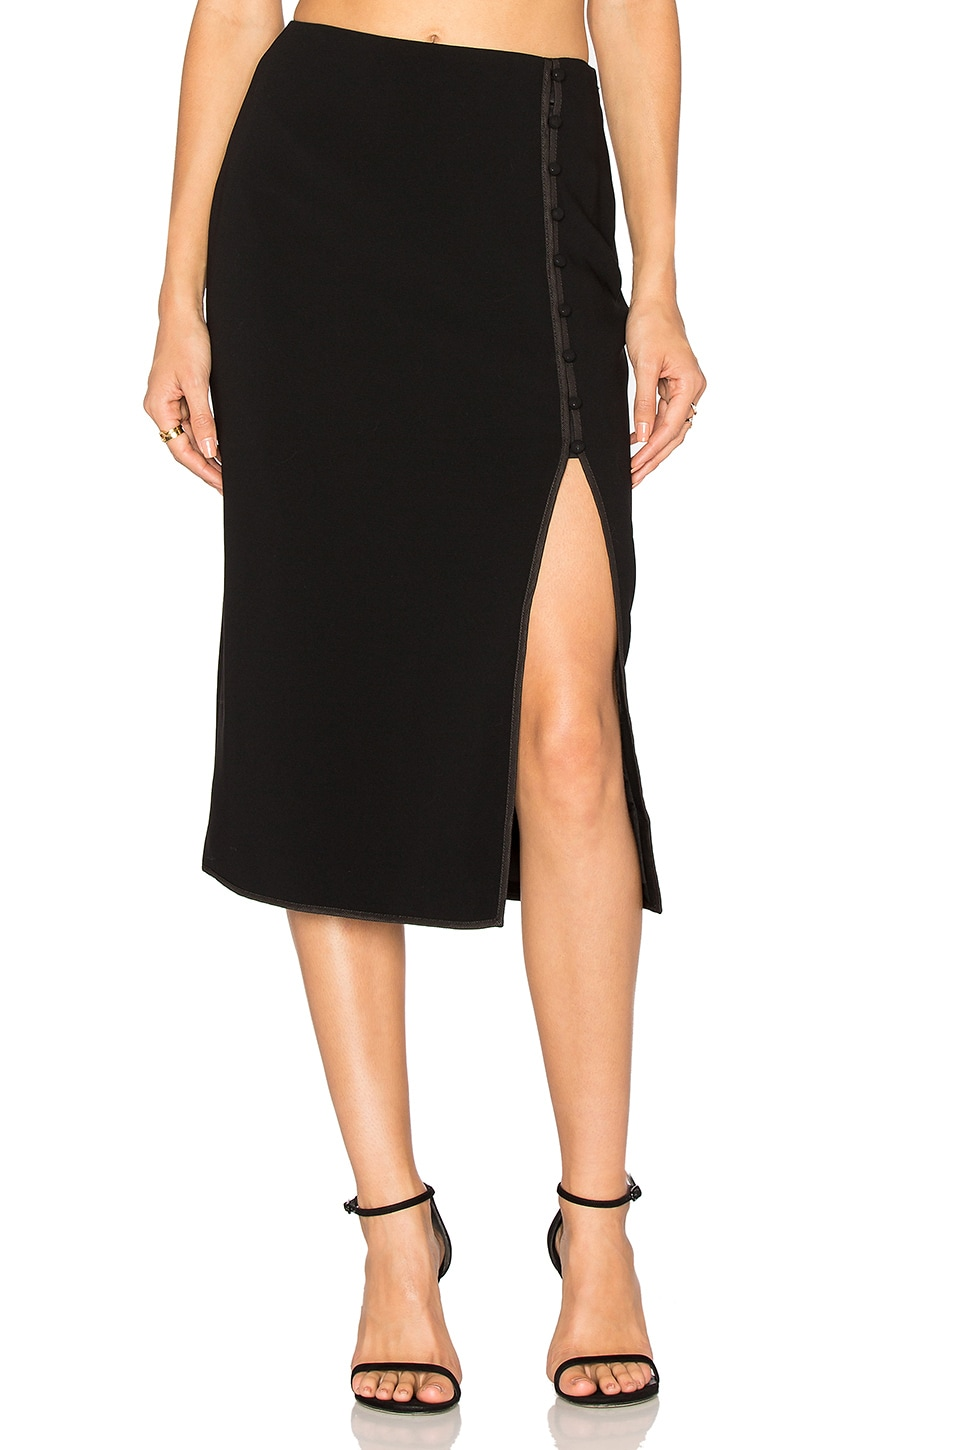 Cinq a Sept Farrow Skirt in Black